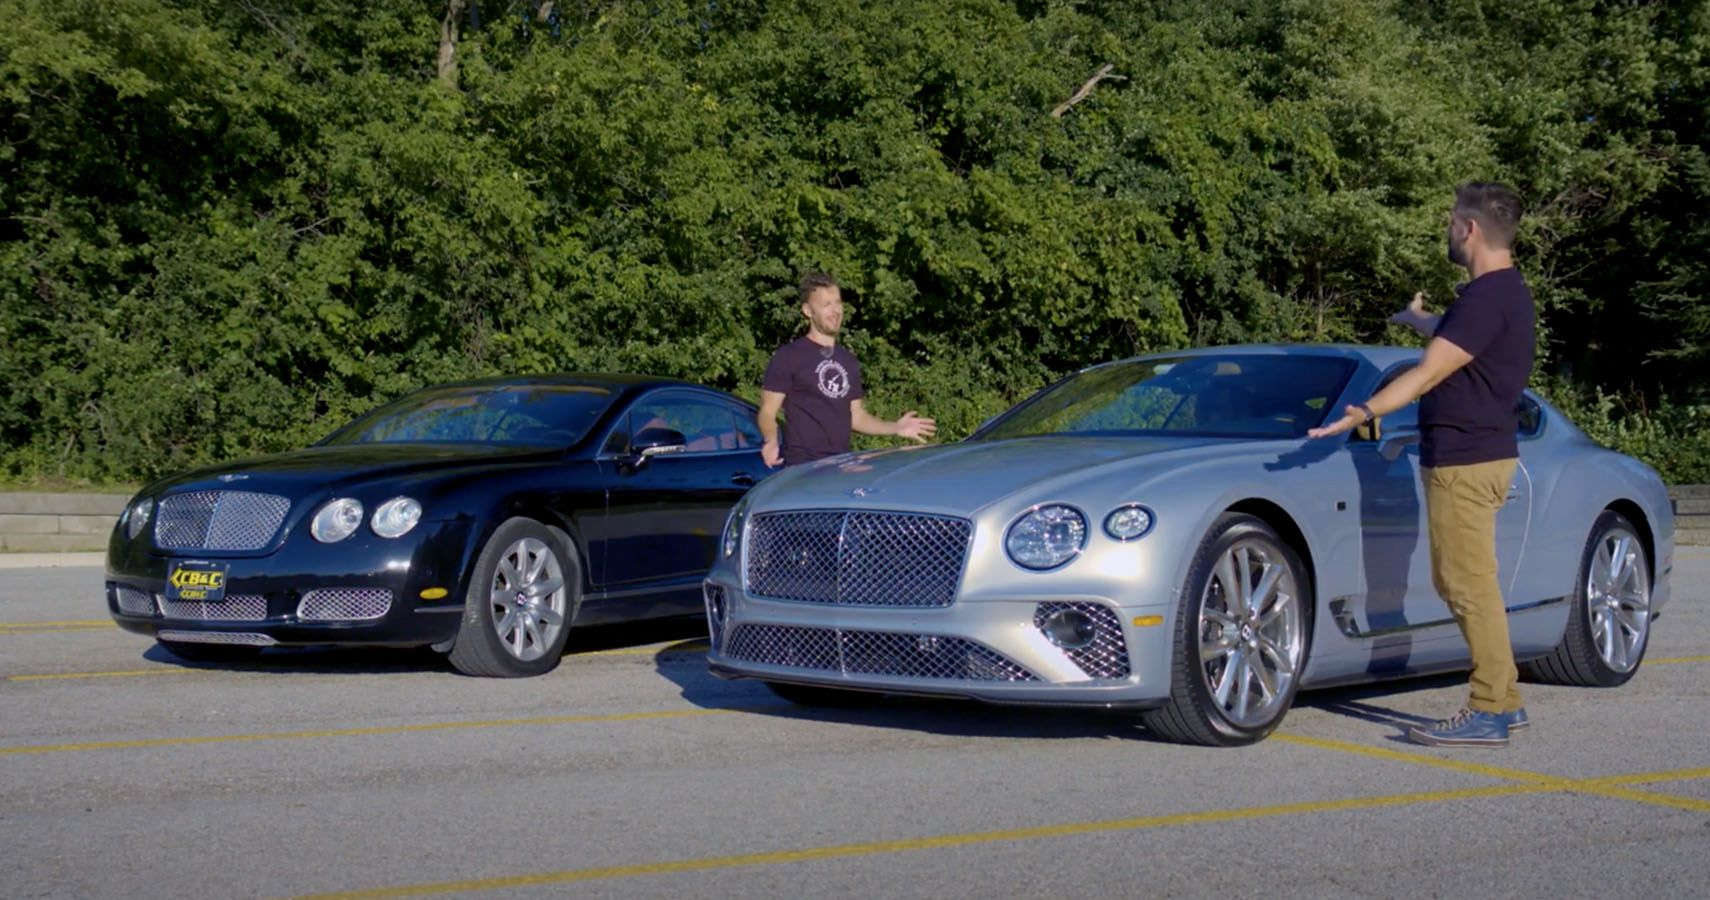 Throttle House Compares The New Bentley Continental GT Vs An Old Beater